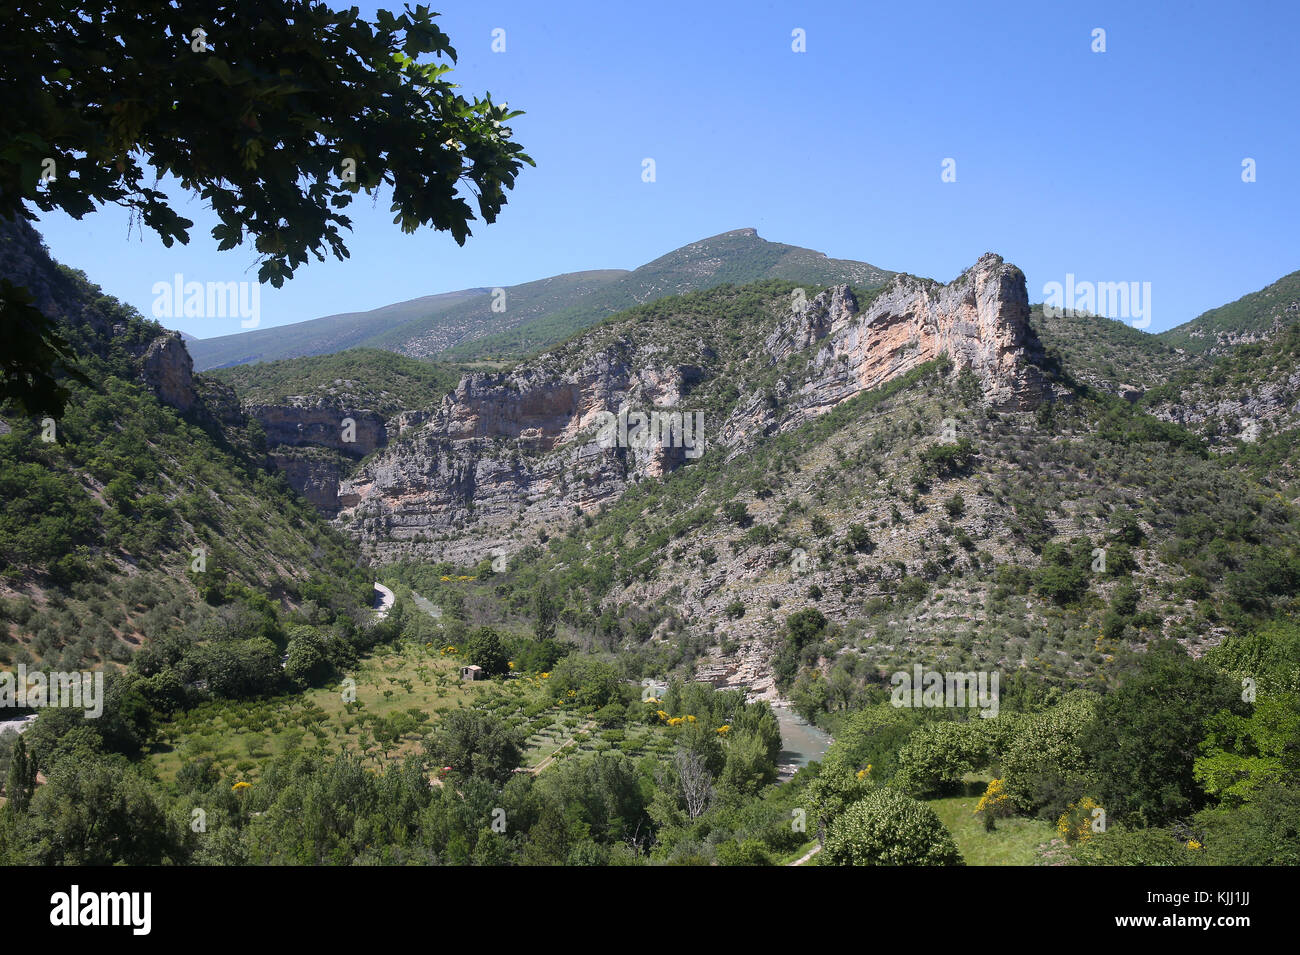 View from the mountain top into the valley near Remuzat.  France. - Stock Image